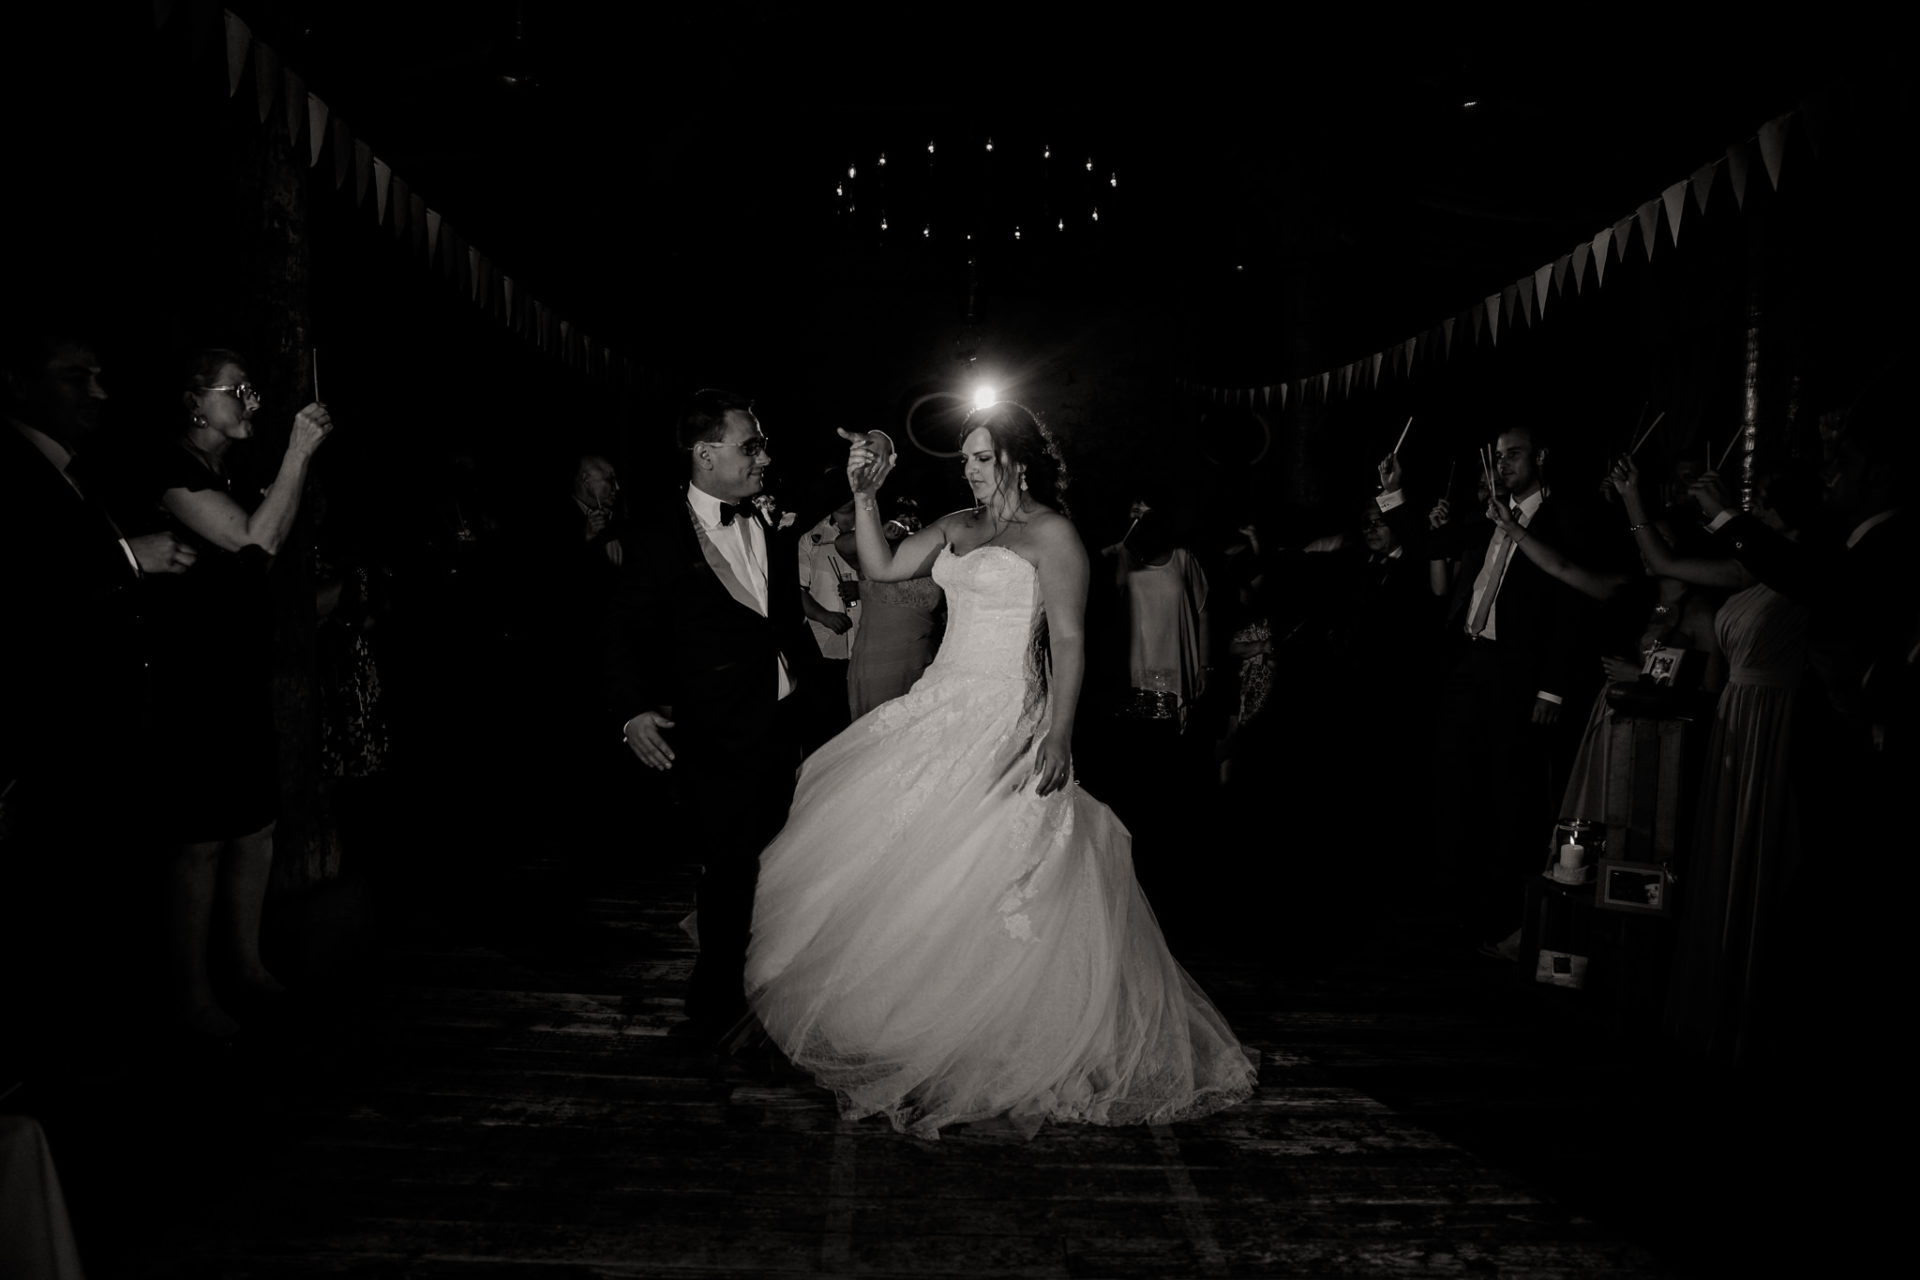 stuttgart wedding photographer-Castle Wedding Germany-Blackforest marriage-schloss heinsheim bride and groom dancing